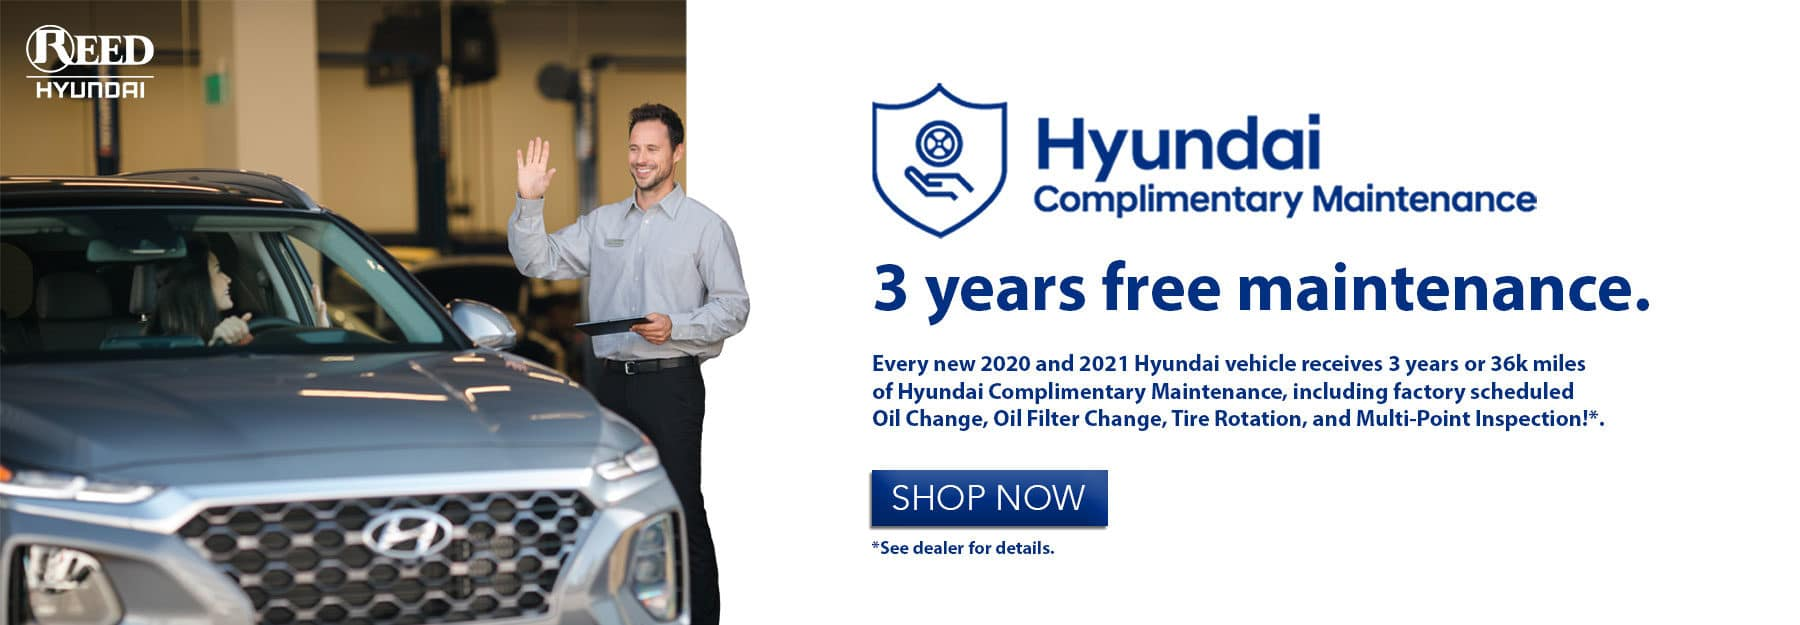 Reed Hyundai Kansas City Complimentary Maintenance